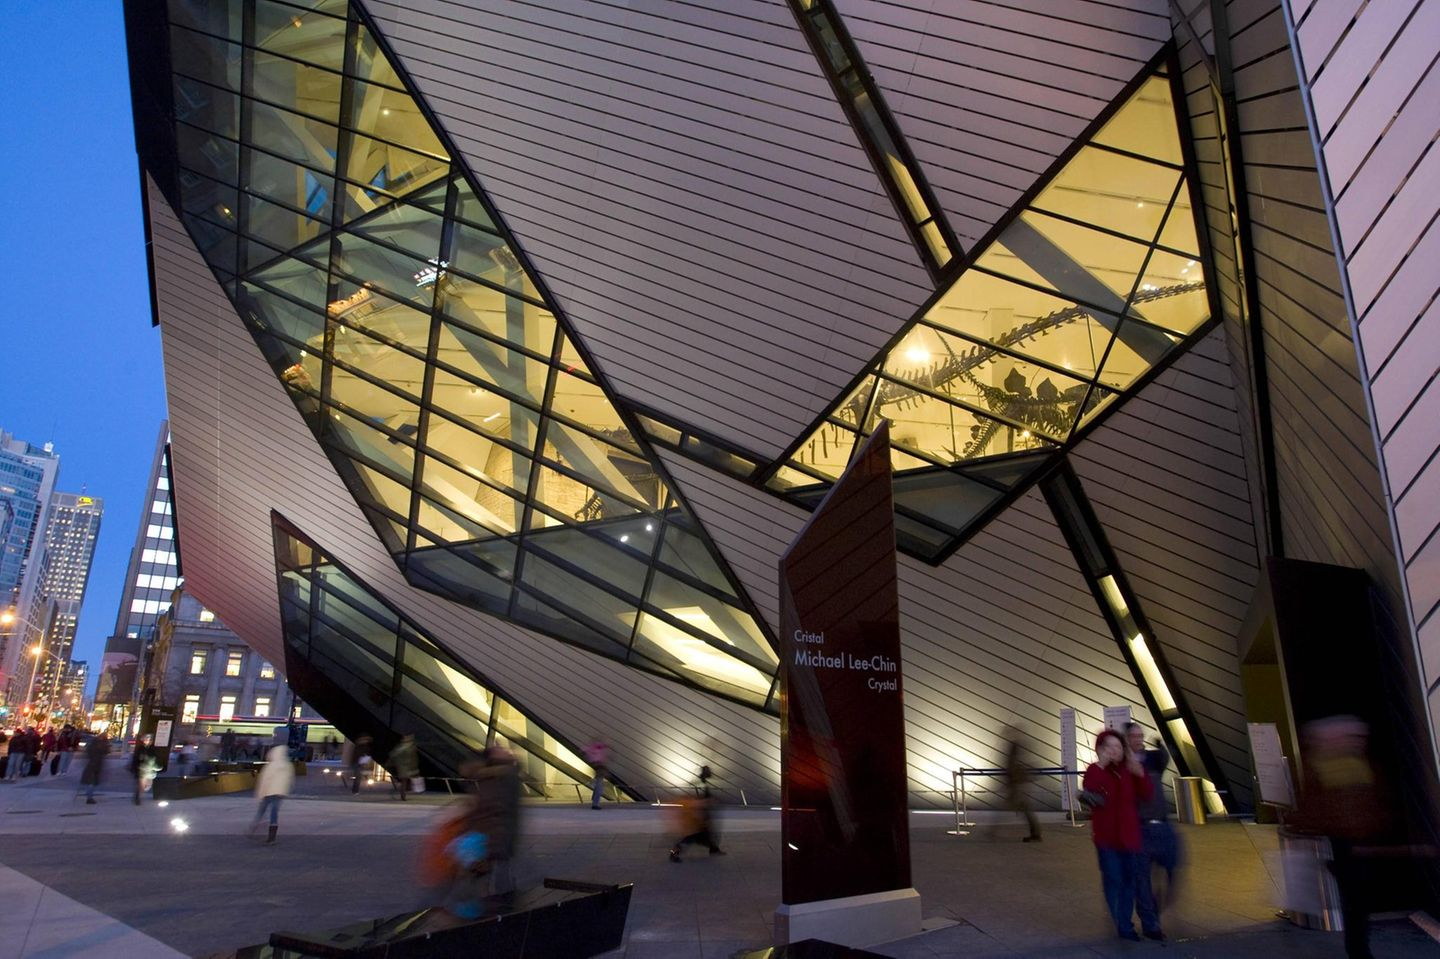 Royal Ontario Museum: The Crystal